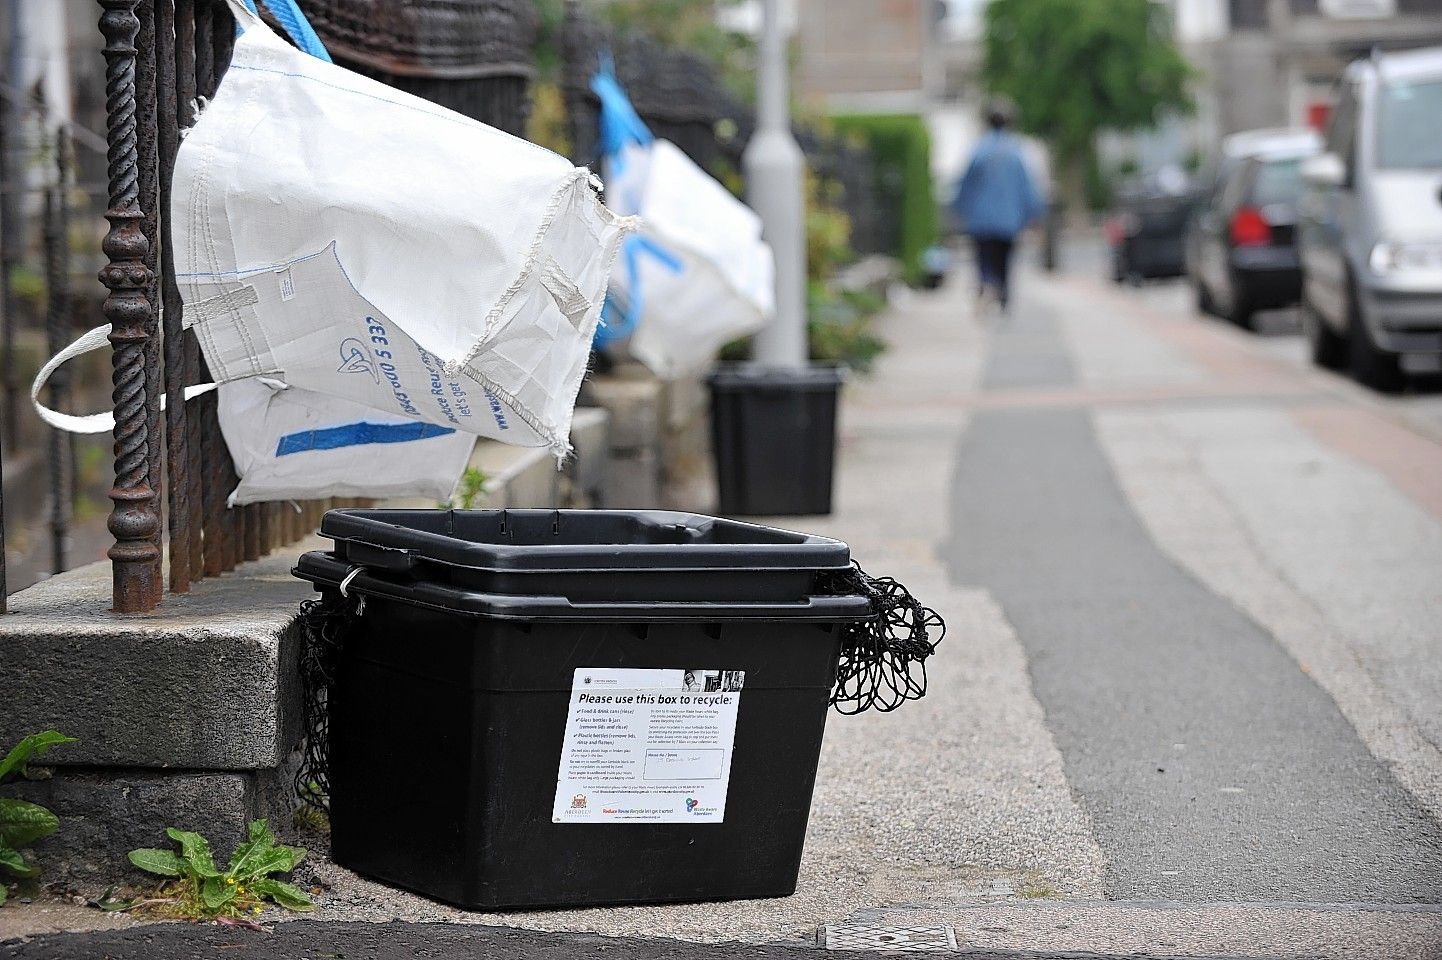 Bag and box recycling is currently in use in Aberdeen